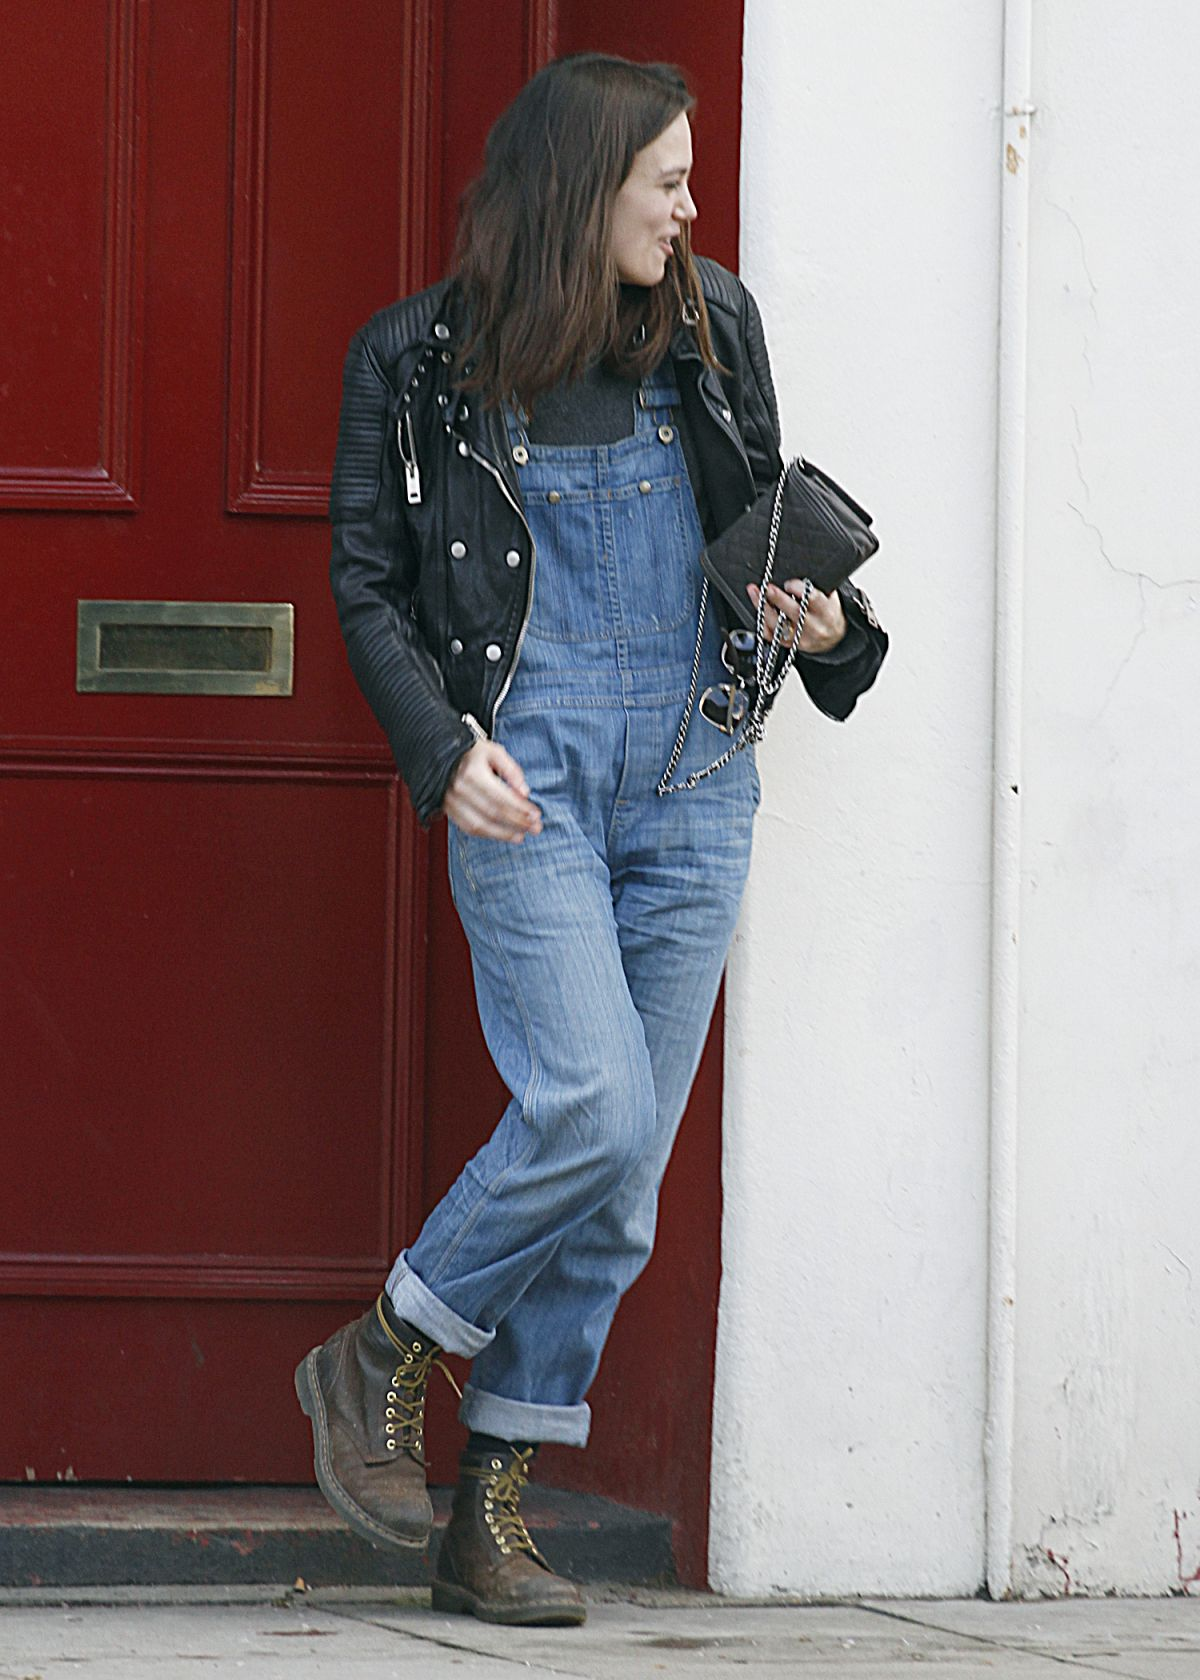 KEIRA KNIGHTLEY In Jeans Out And About In London HawtCelebs